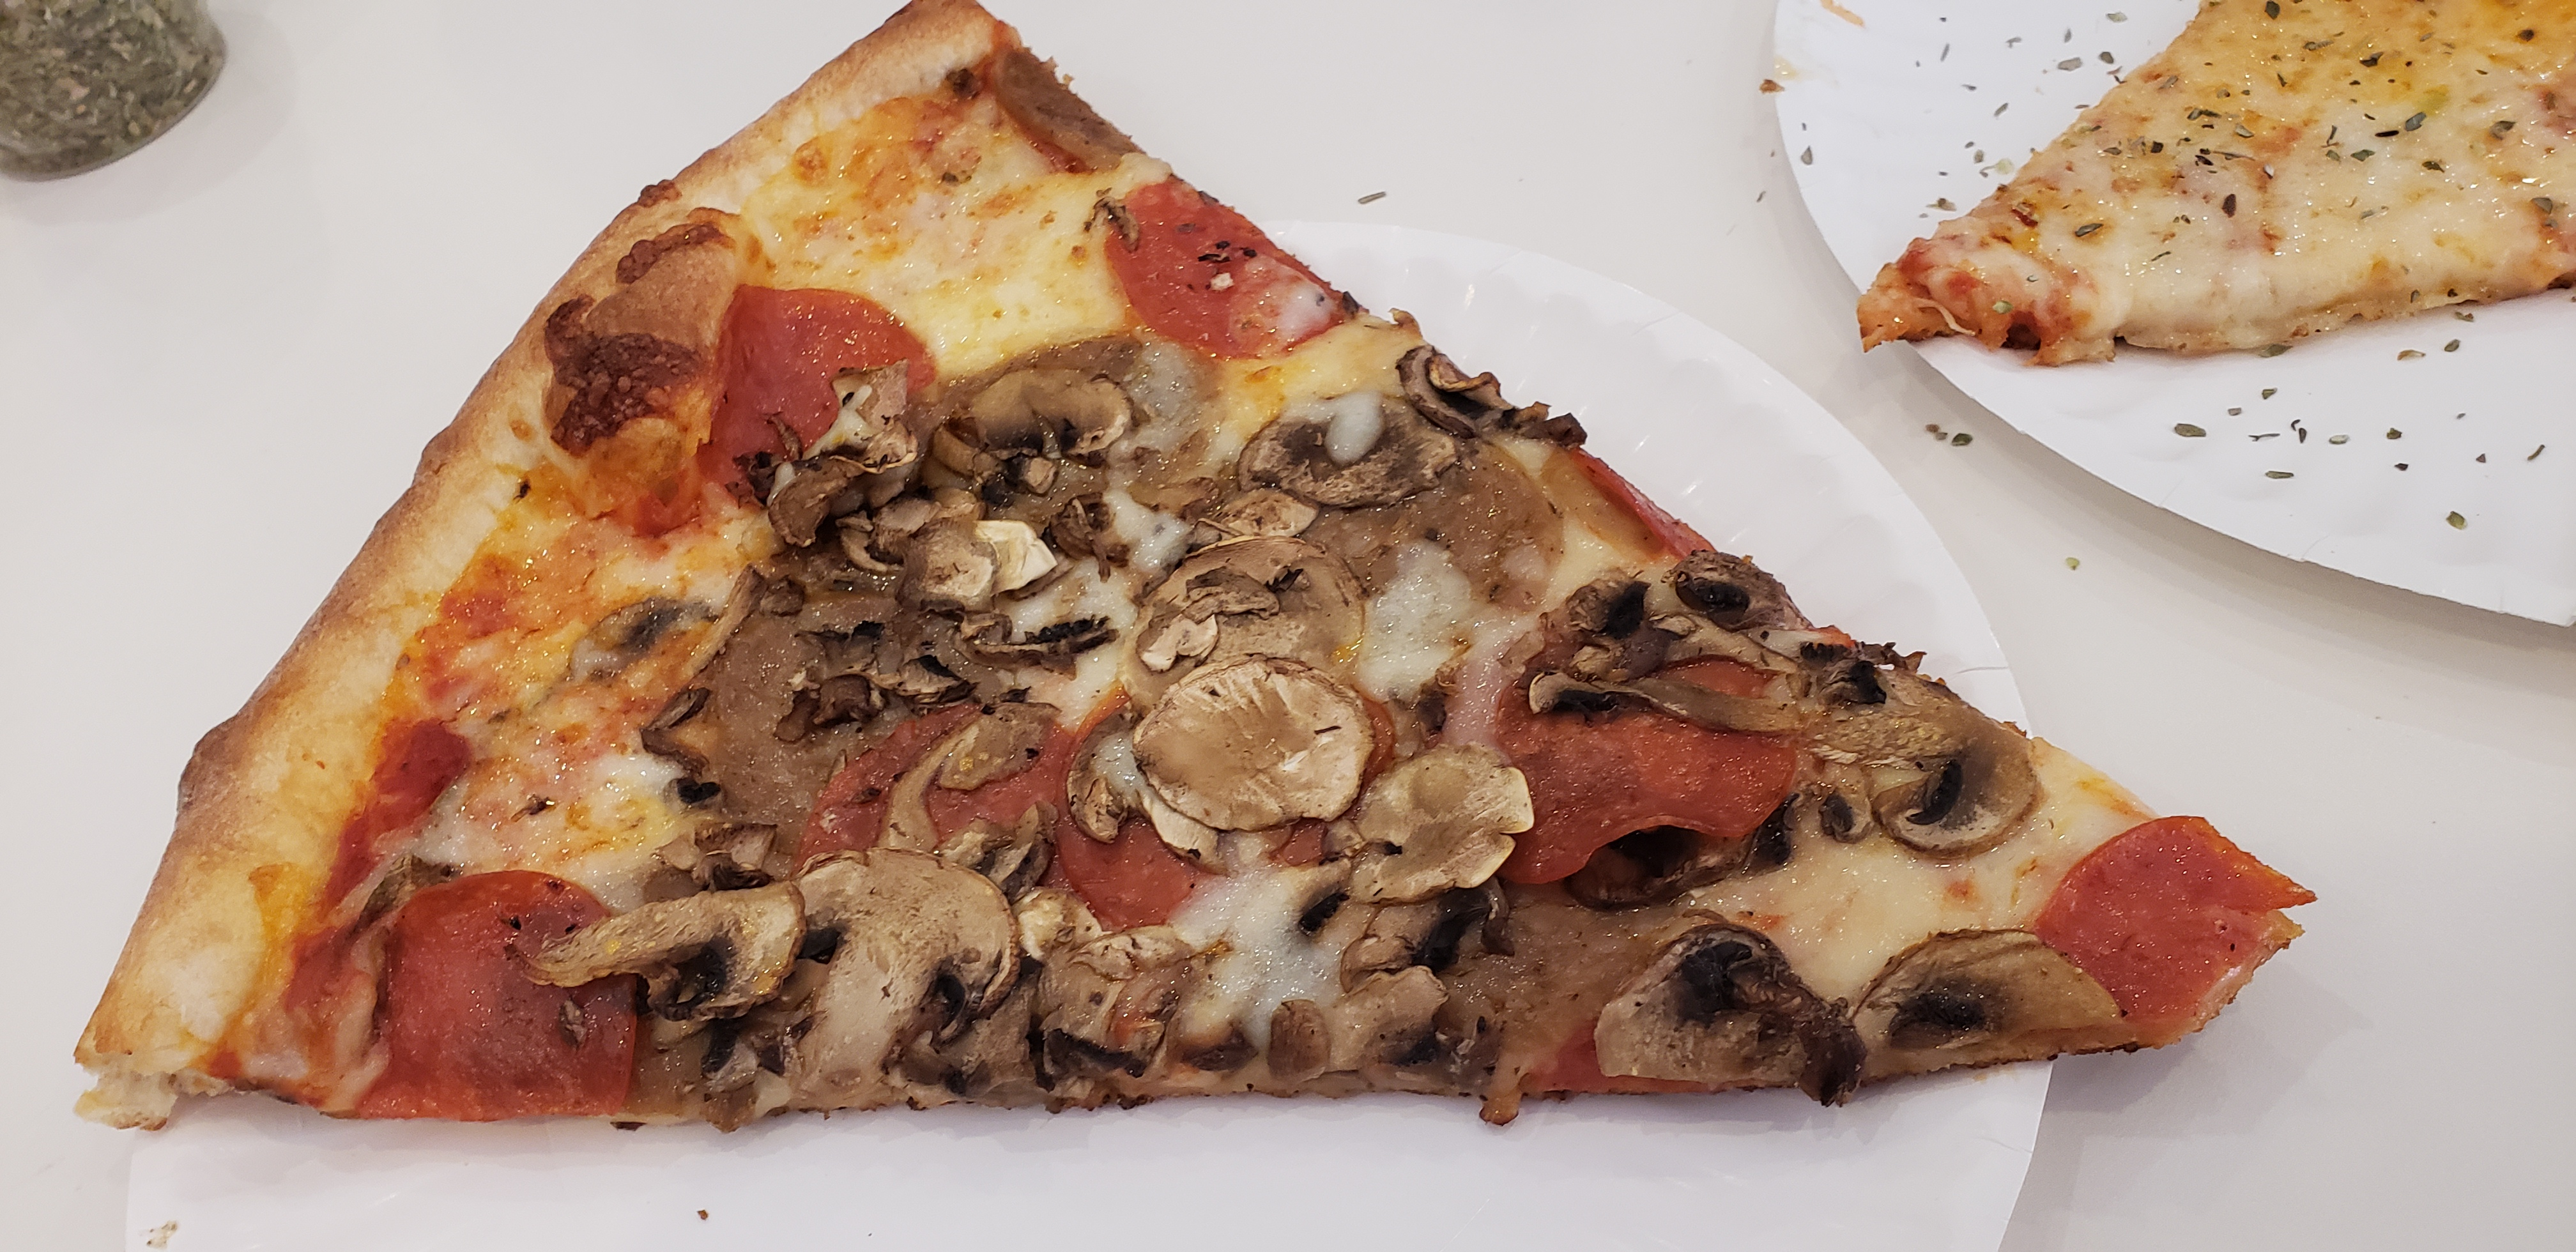 jeffrey.currier on One Bite Pizza App